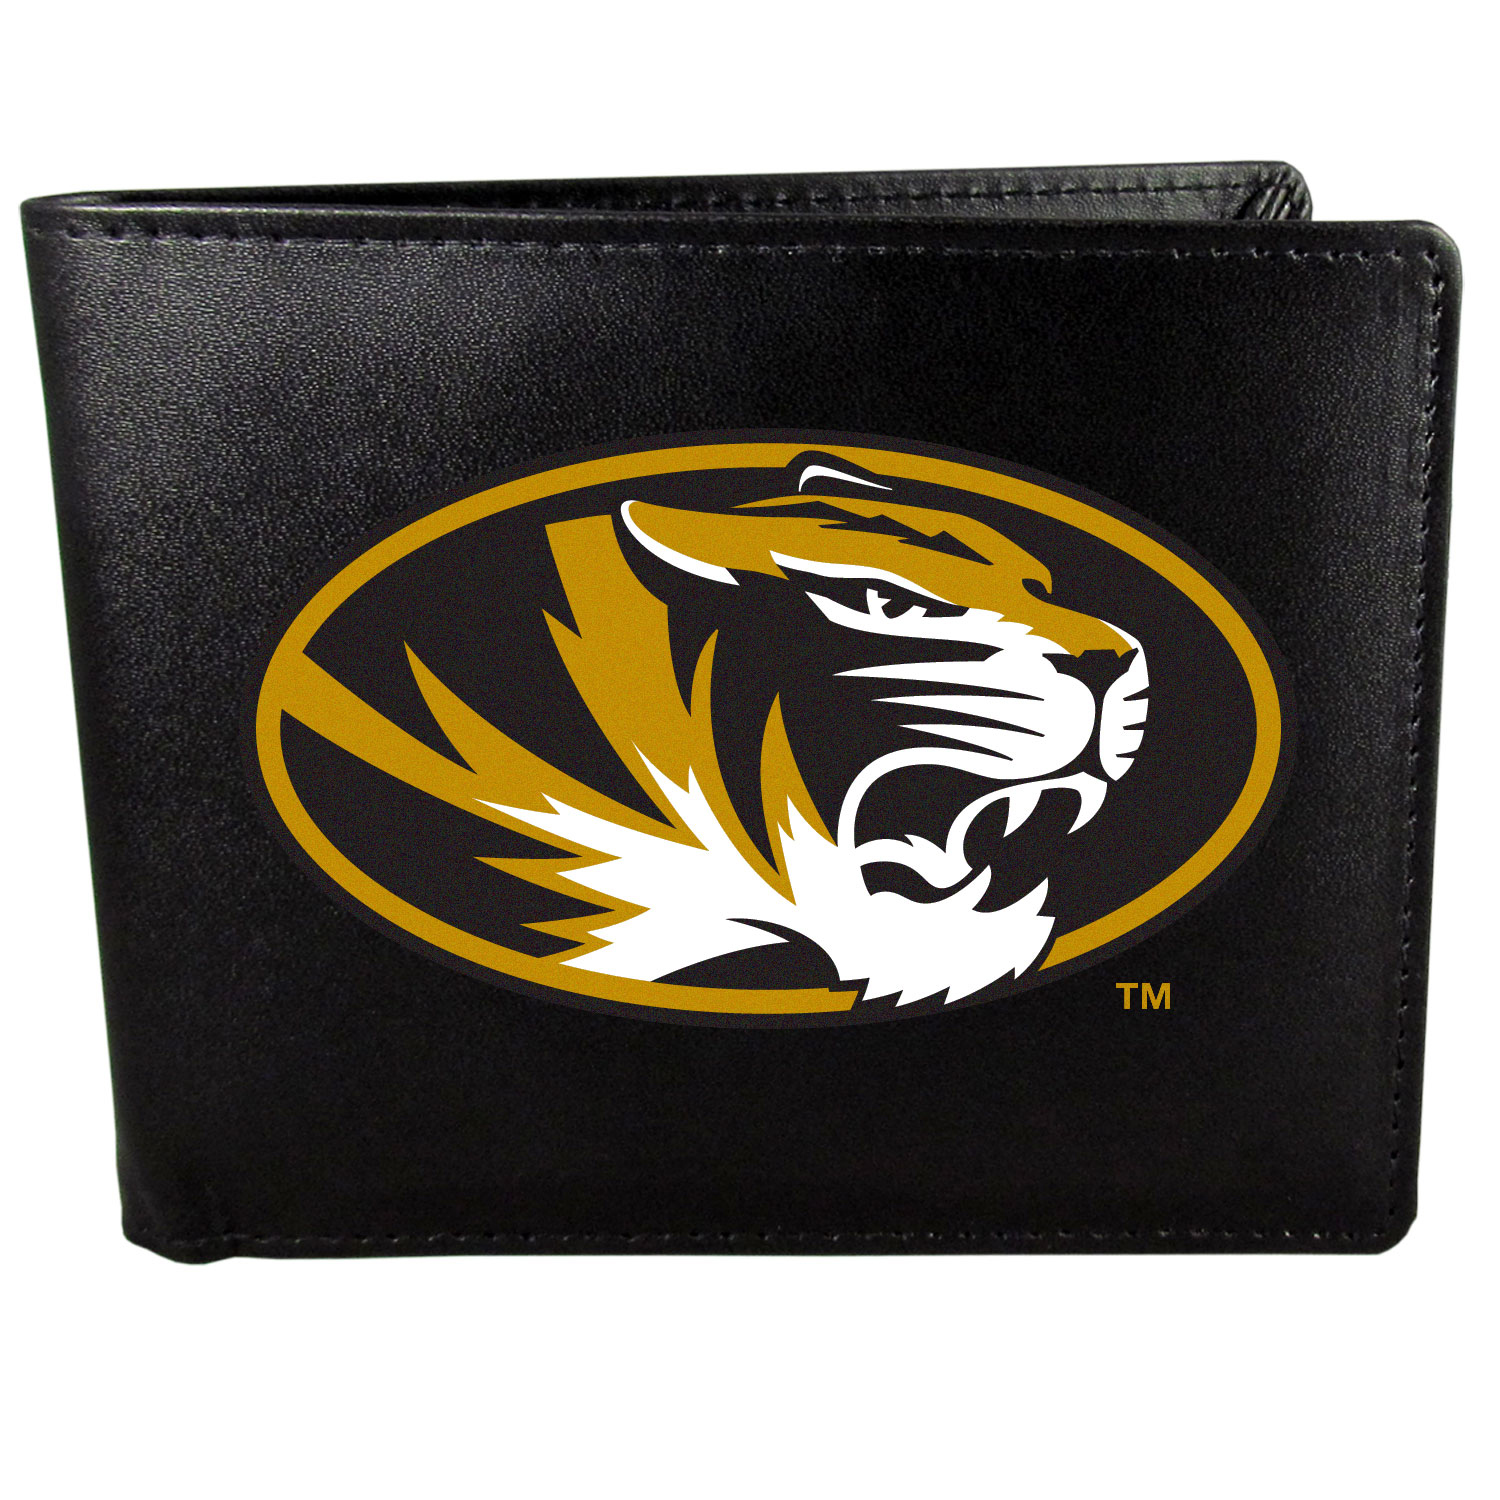 Missouri Tigers Leather Bi-fold Wallet, Large Logo - Our classic fine leather bi-fold wallet is meticulously crafted with genuine leather that will age beautifully so you will have a quality wallet for years to come. The wallet opens to a large, billfold pocket and numerous credit card slots and has a convenient windowed ID slot. The front of the wallet features an extra large Missouri Tigers printed logo.